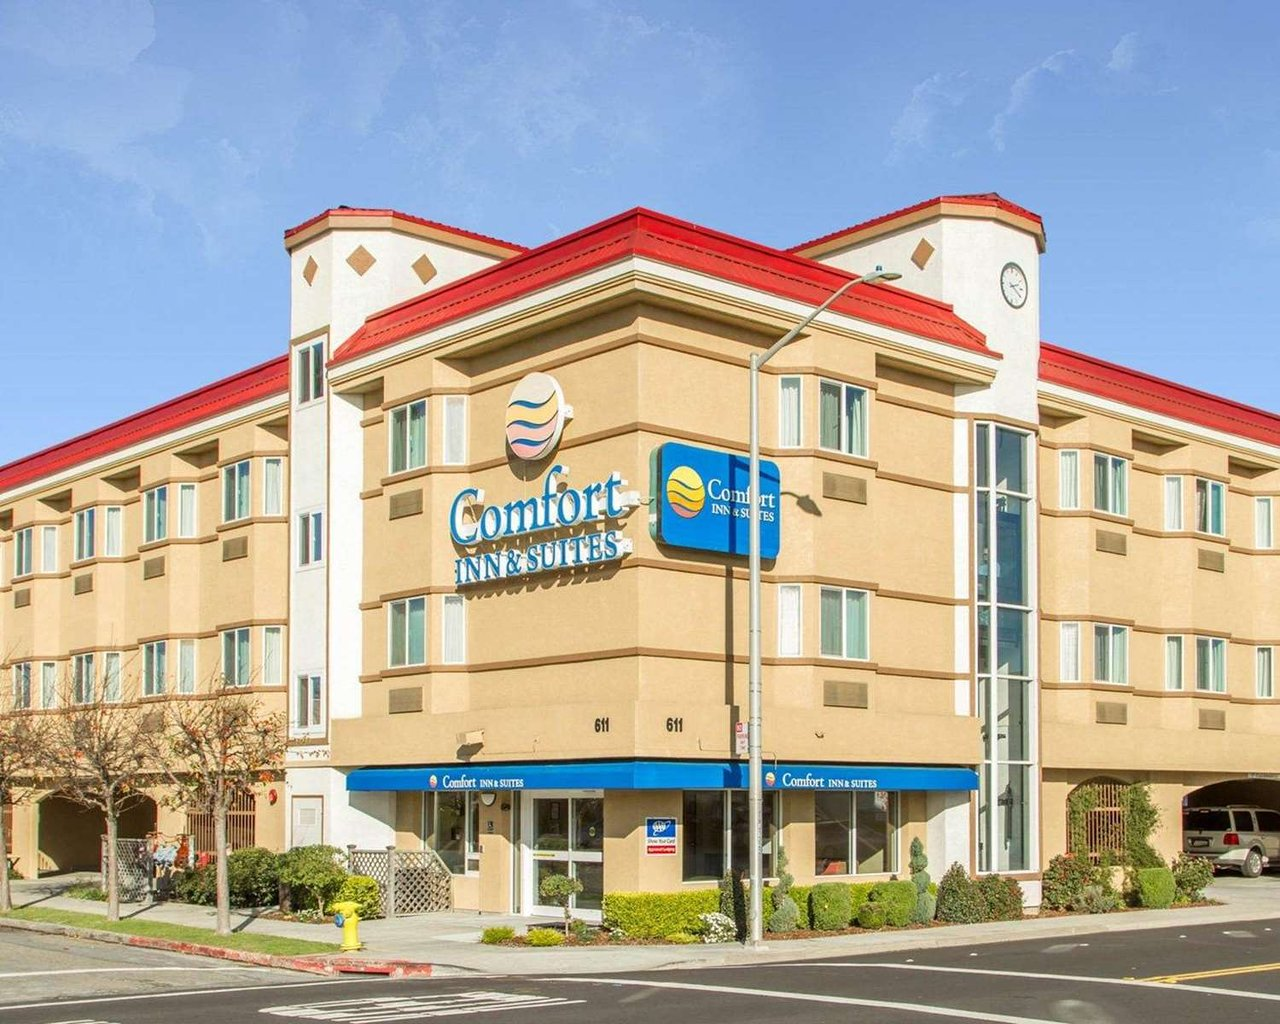 comfort inn suites san francisco airport west 170 2 4 3 rh tripadvisor com